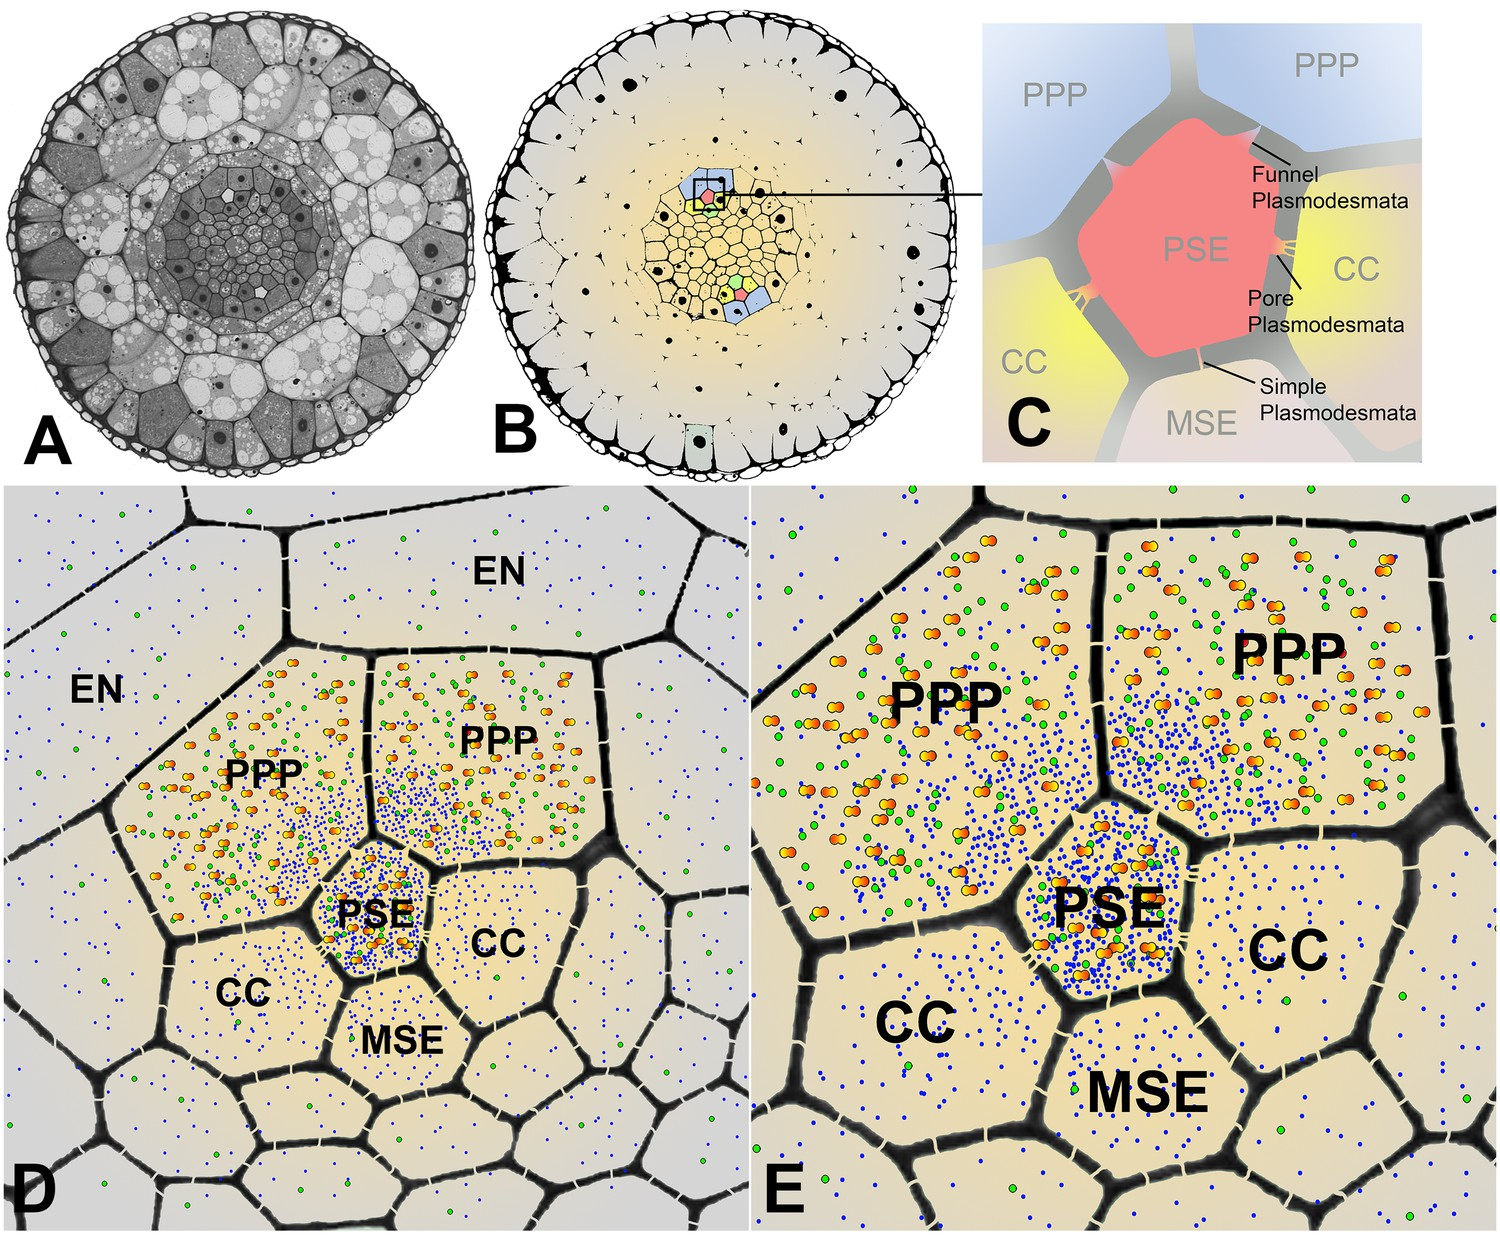 Phloem Unloading In Arabidopsis Roots Is Convective And Regulated By How To Cross Connect 66 Block Sectional Overviews Of The Showing Pd Connections Size Dependent Solutes Macromolecules